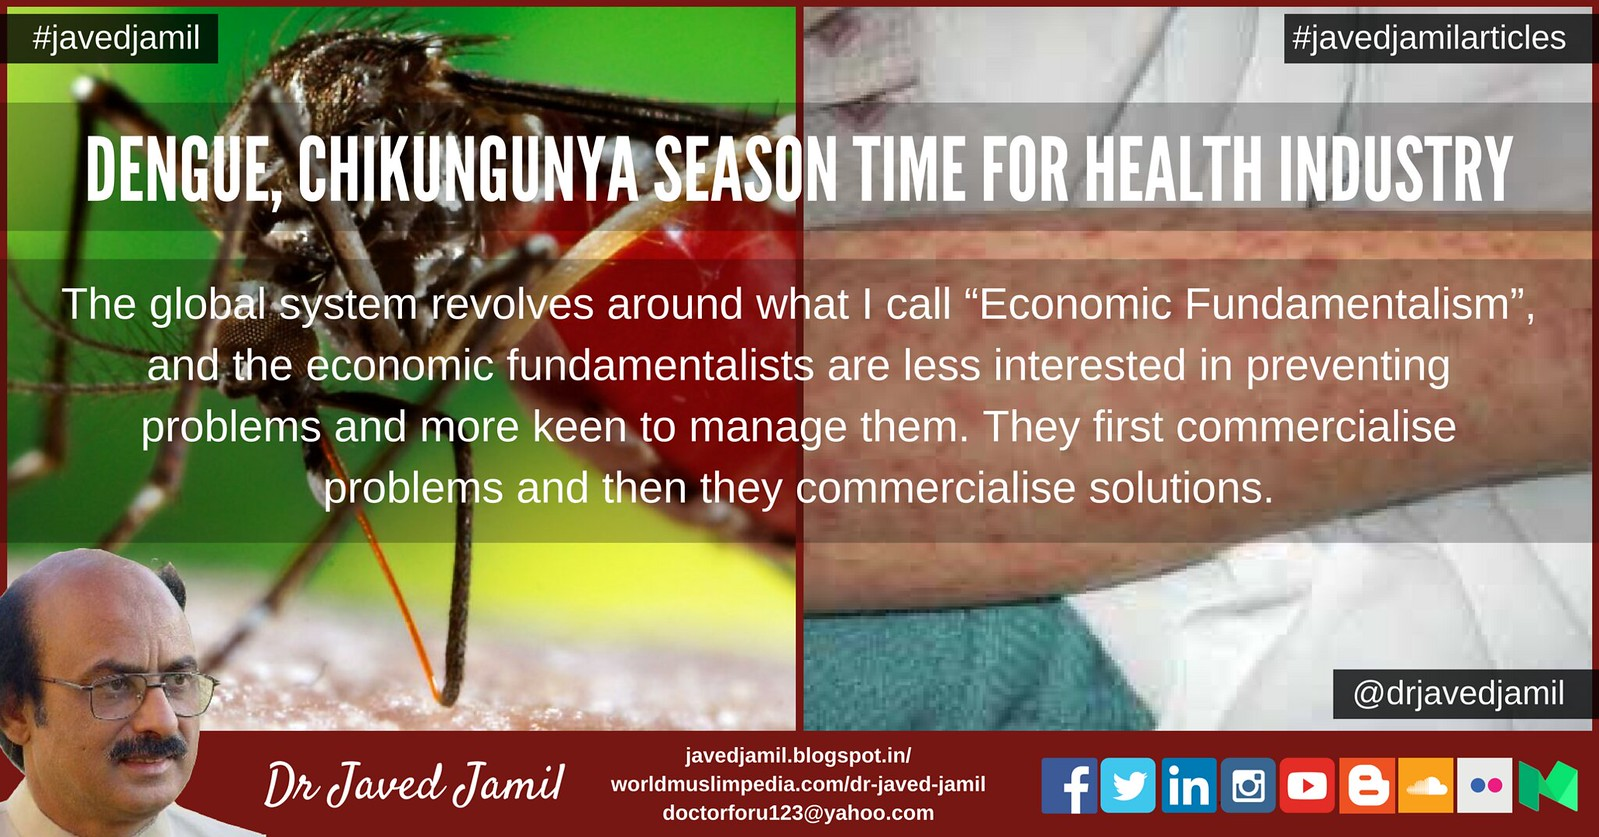 Dengue, Chikungunya season time for Health Industry